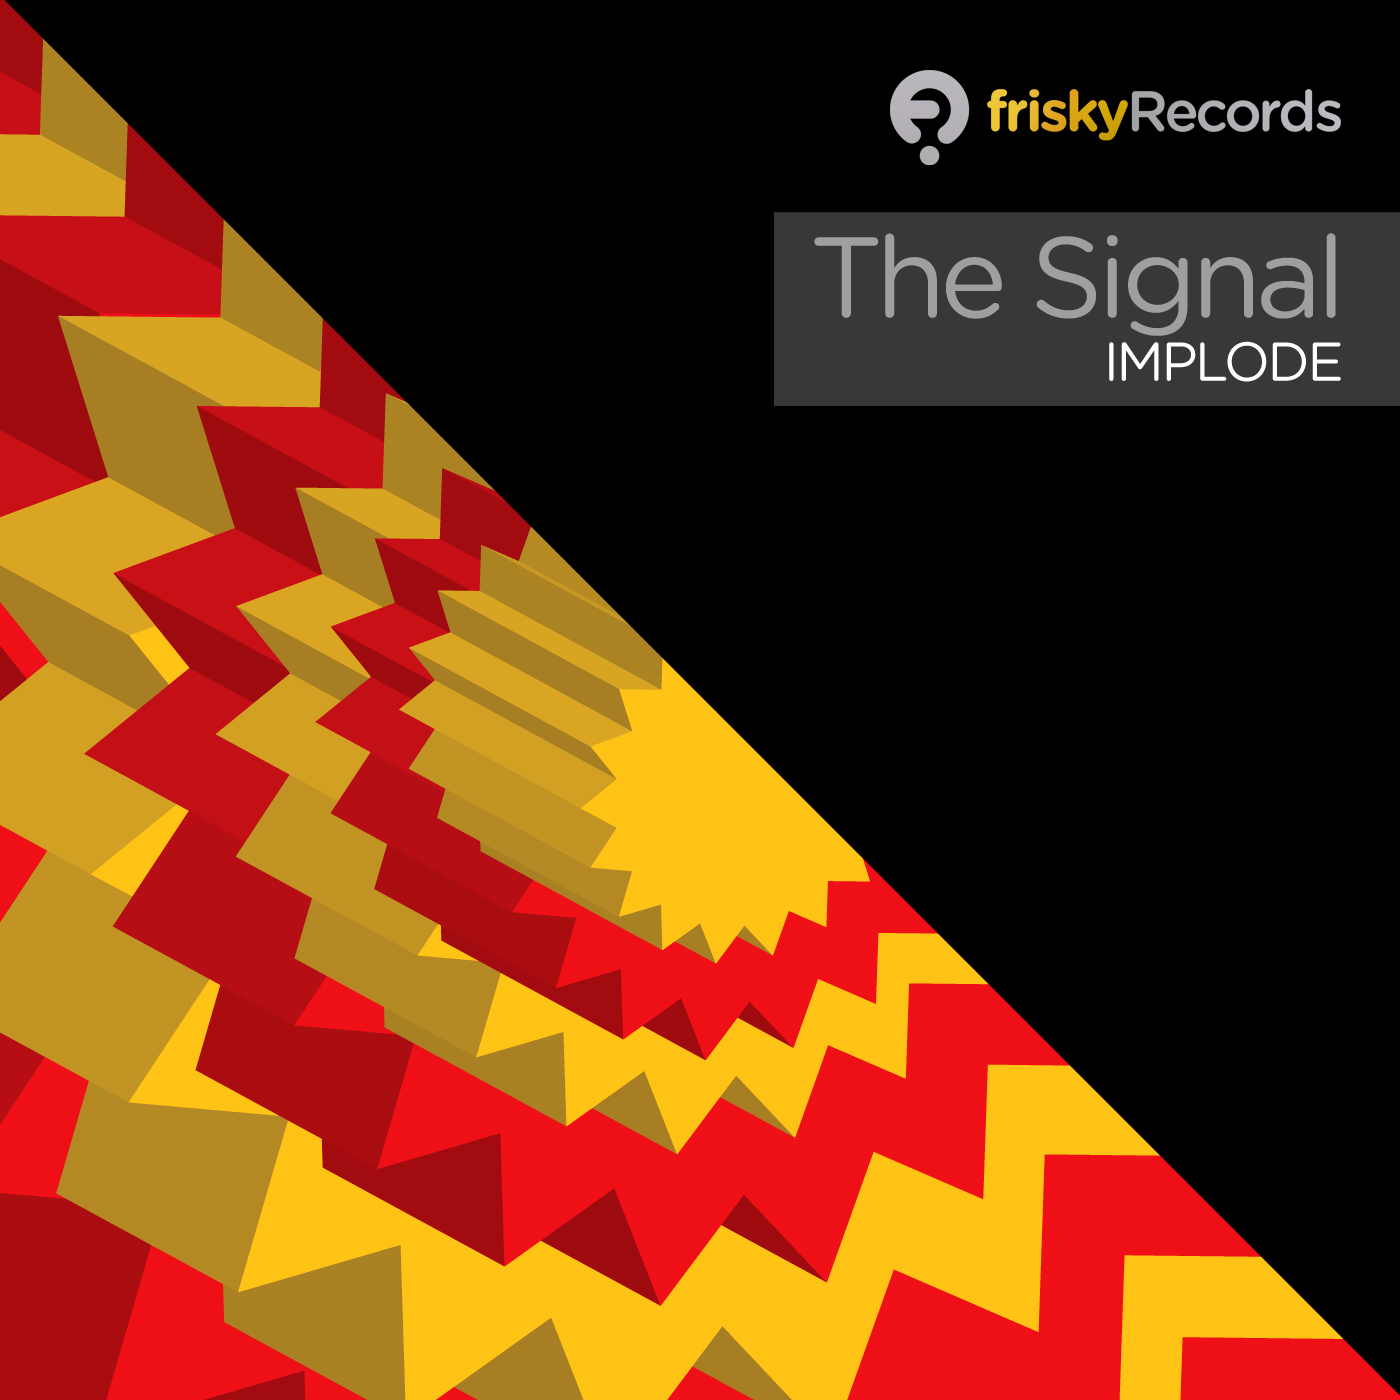 The Signal implode